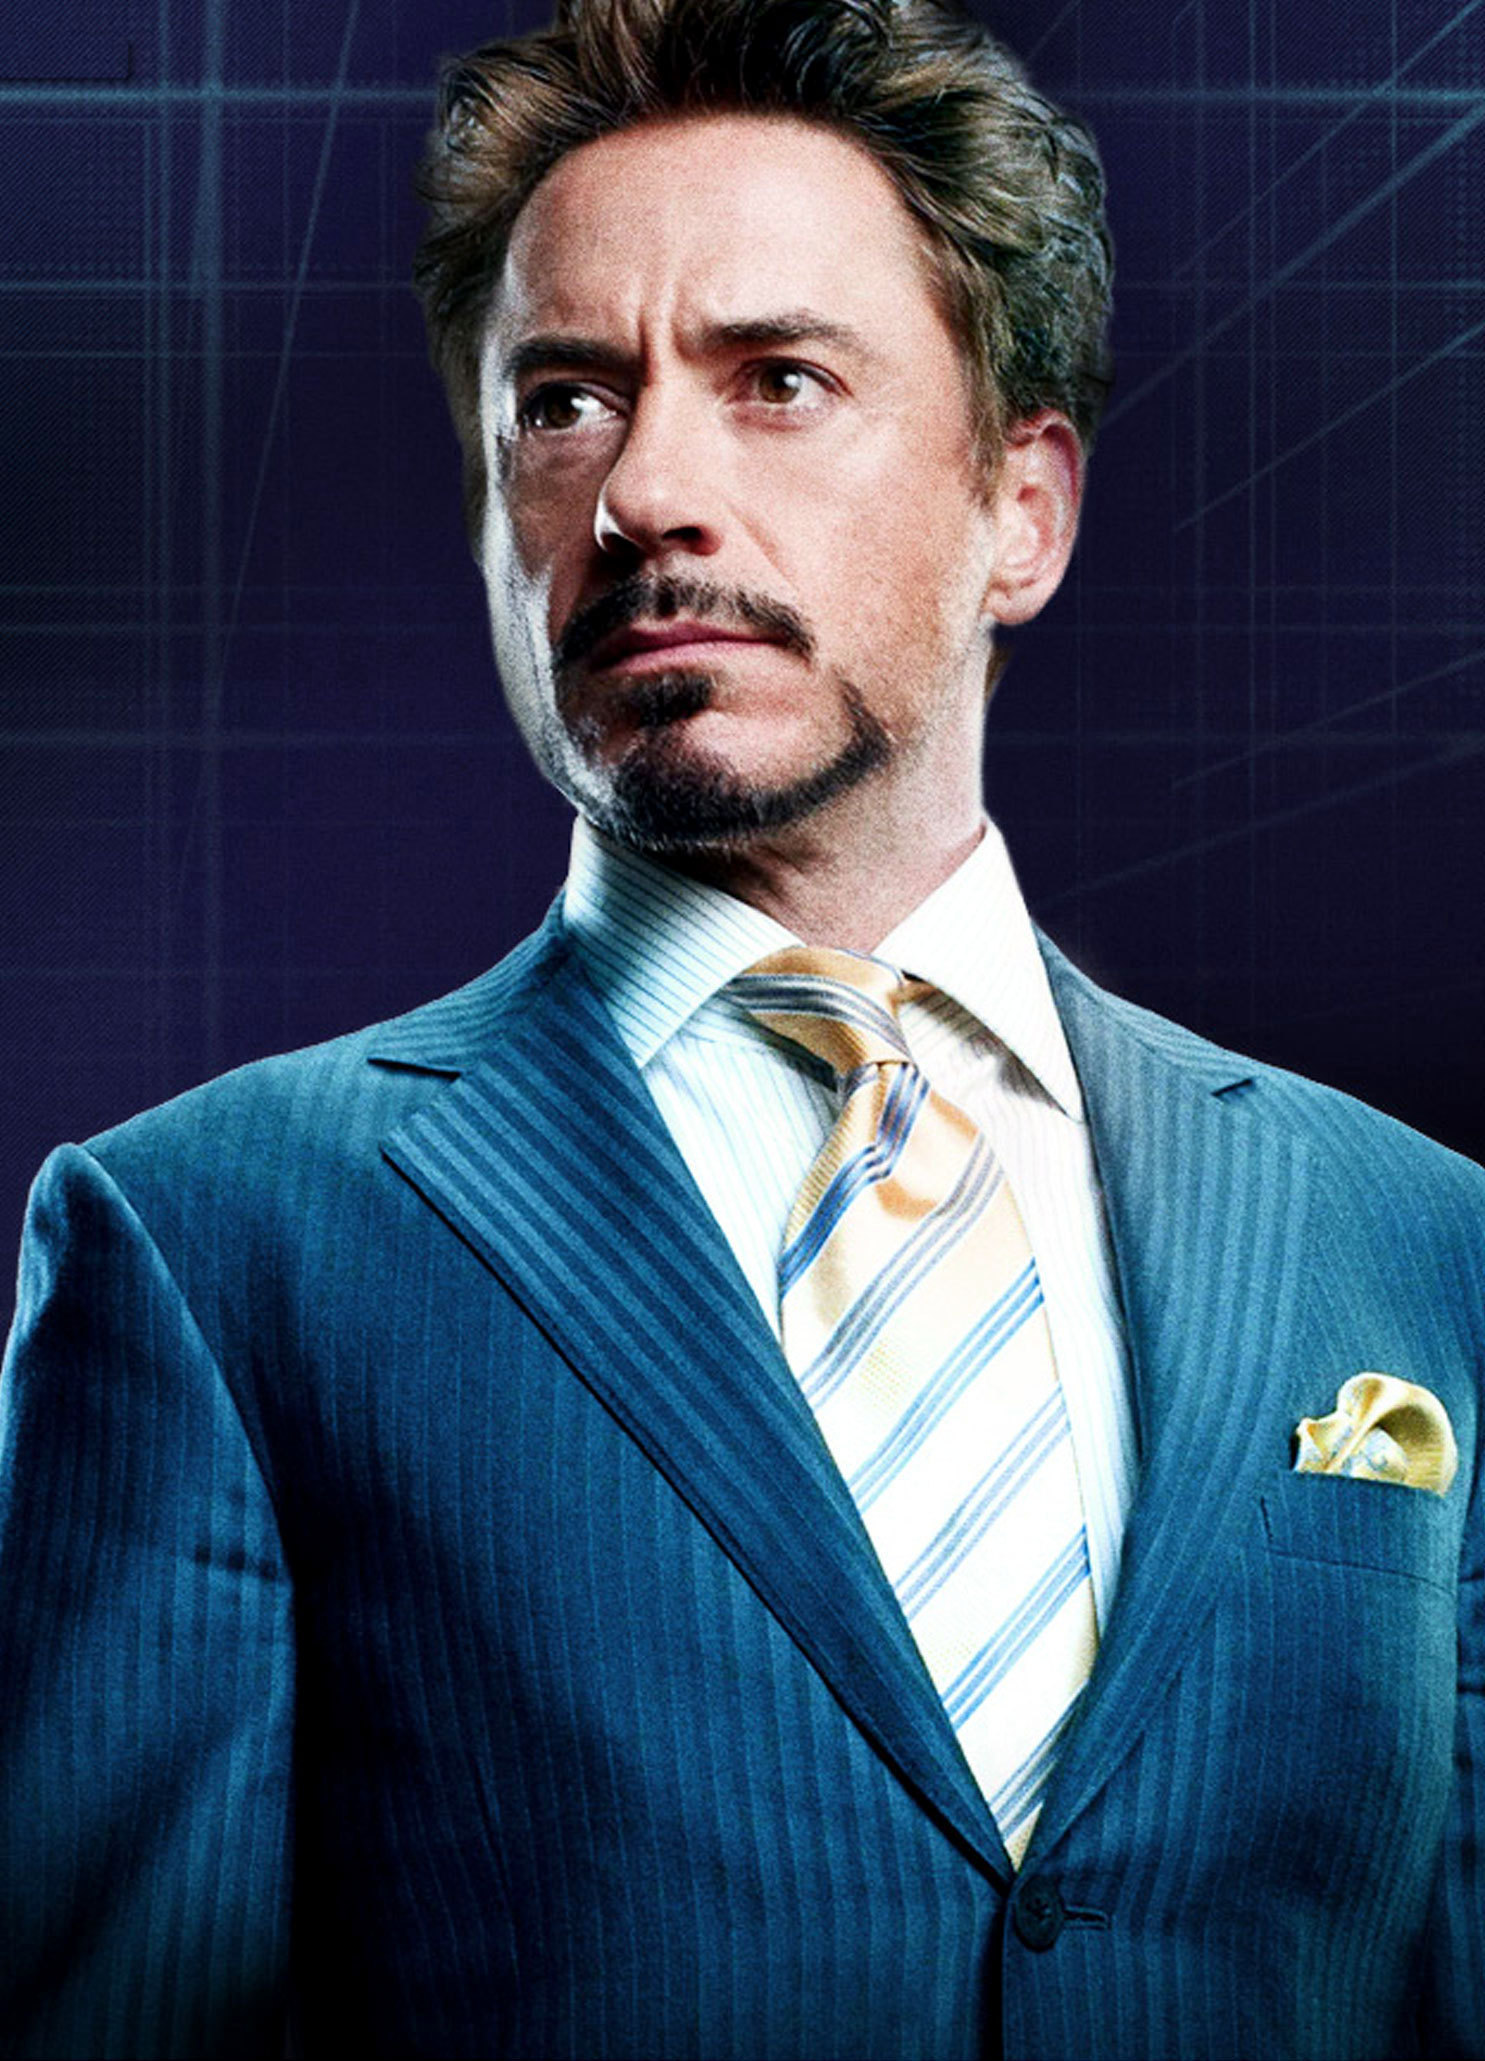 Tony_Stark_Business